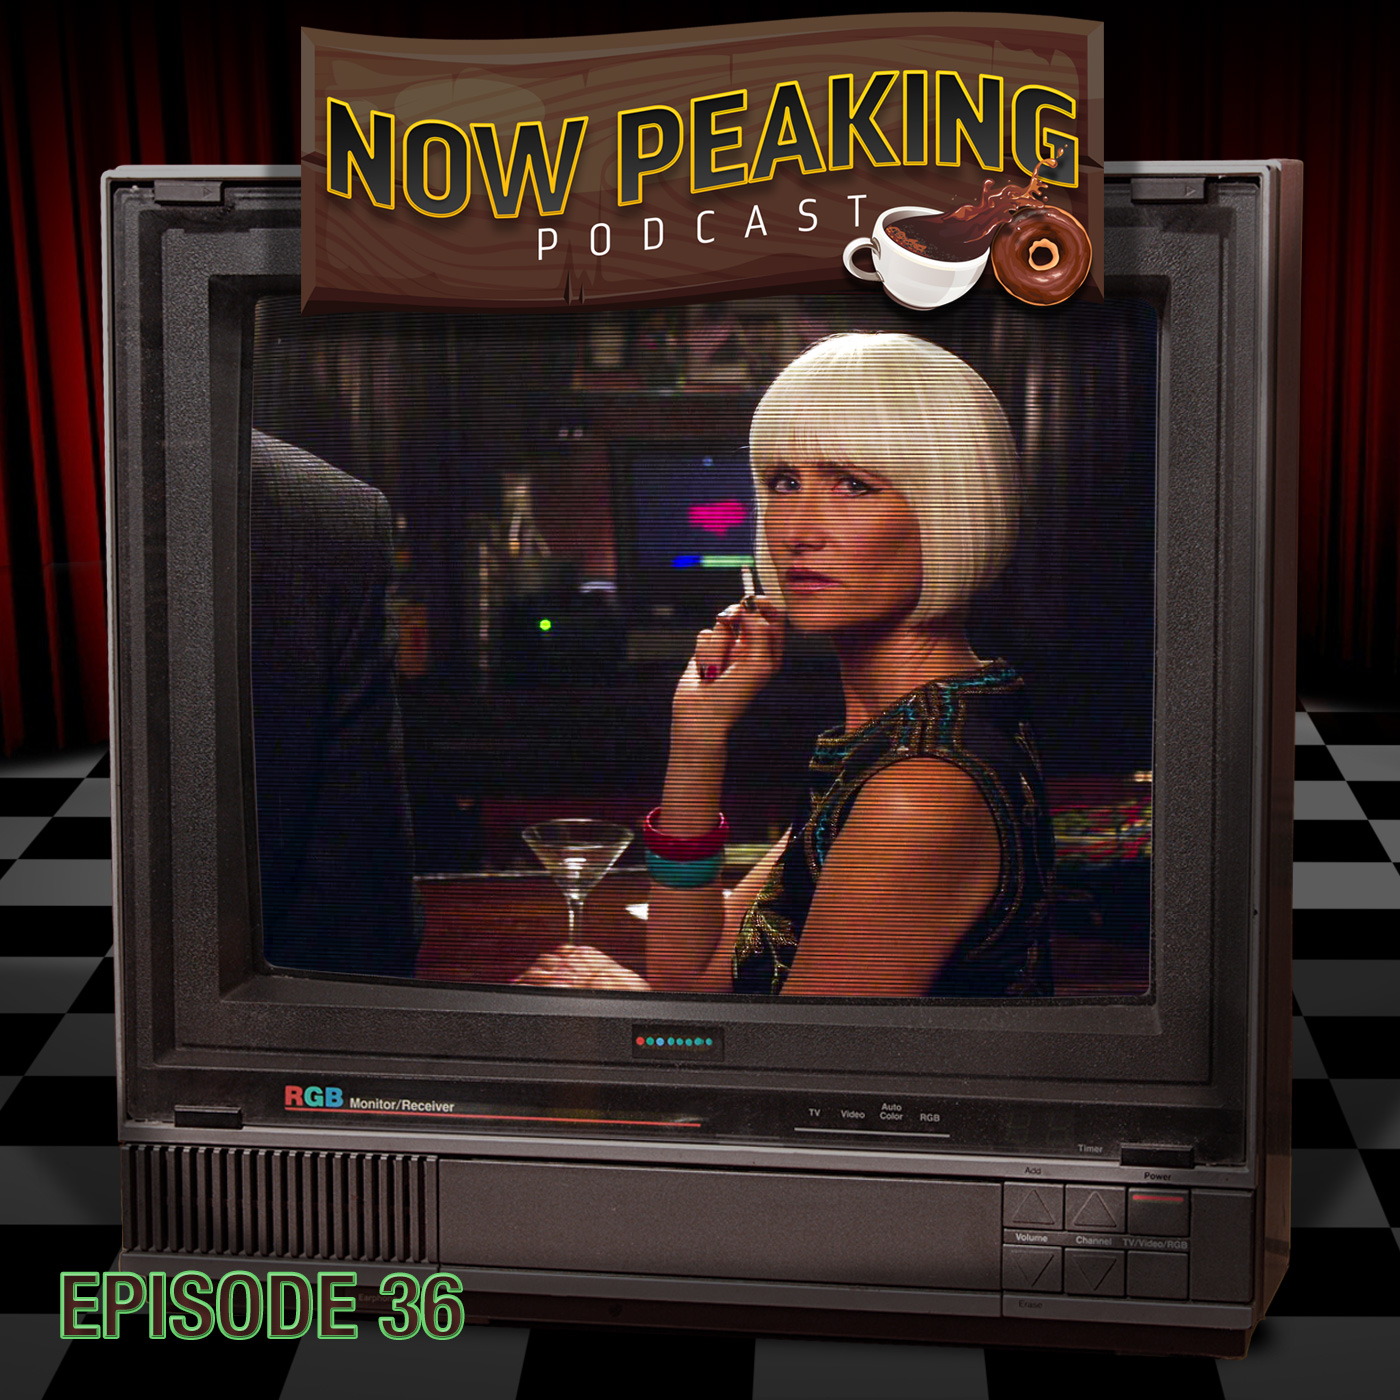 Now Peaking Episode 36: Don't Die. - For Annual Subscribers